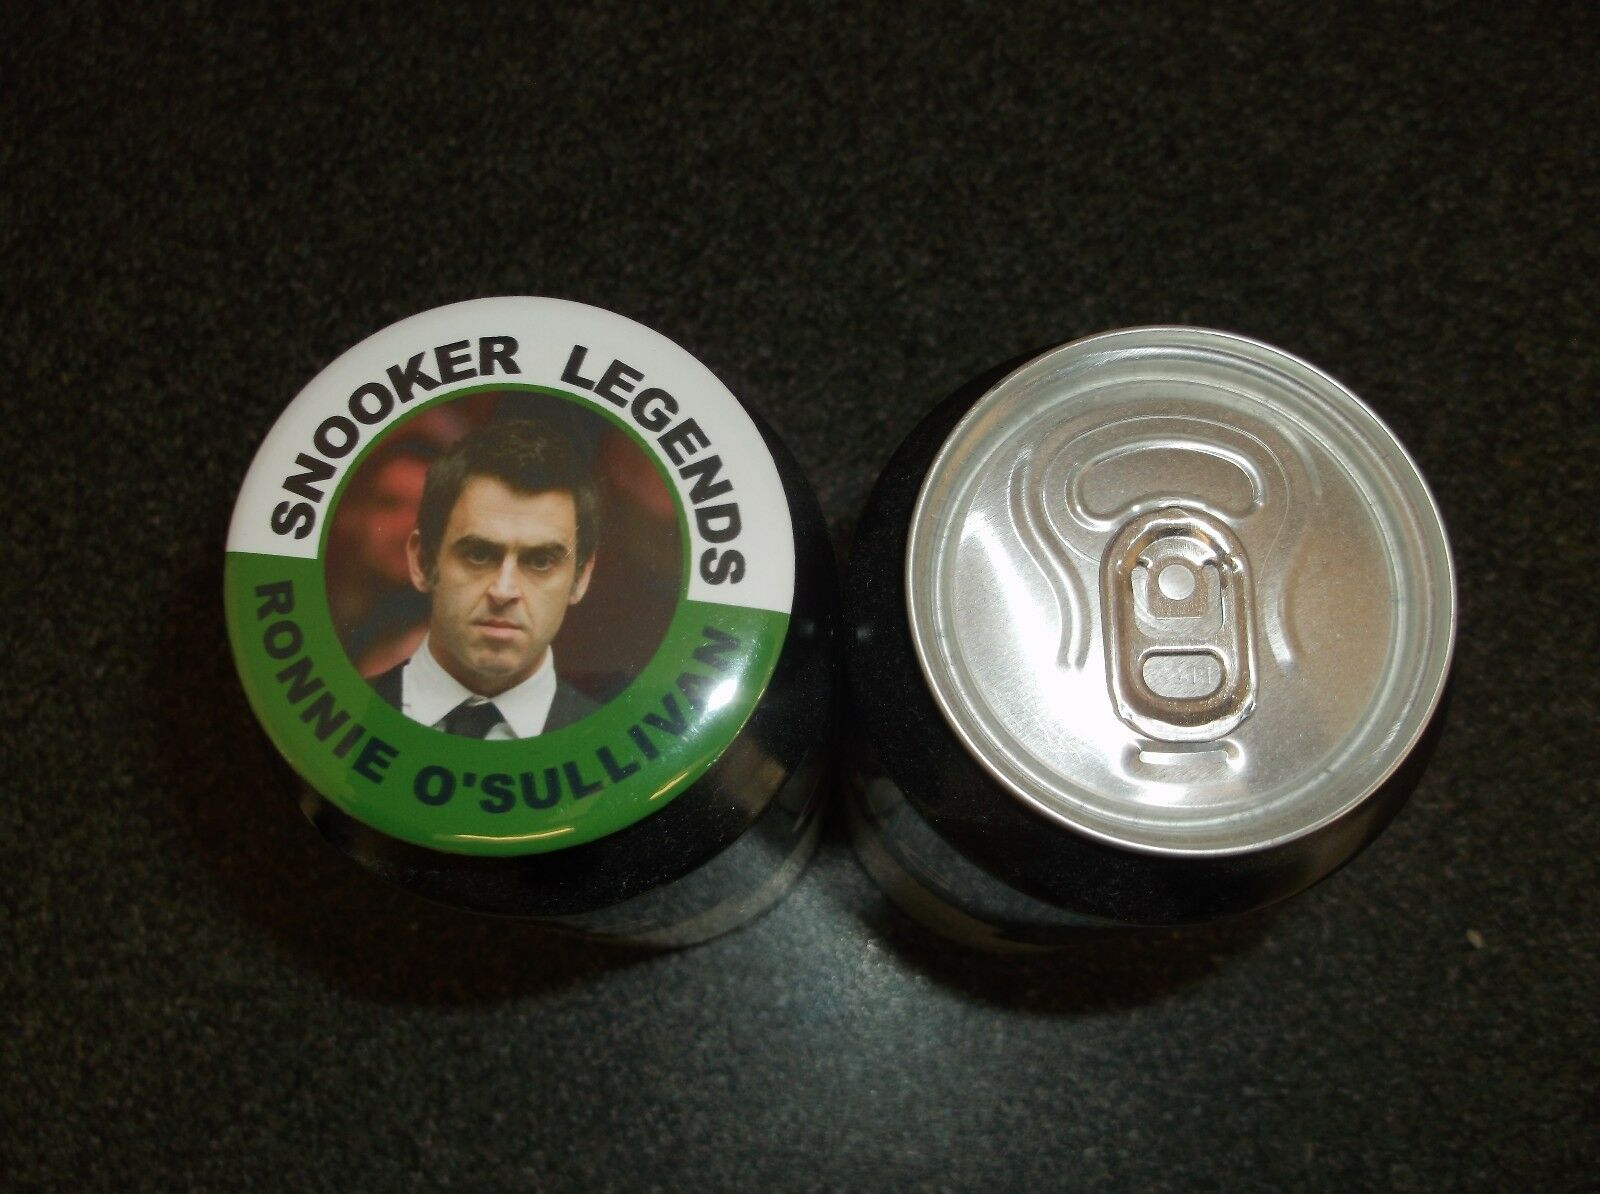 RONNIE O'SULLIVAN  SNOOKER LEGEND MAGNET   55MM  IN SIZE